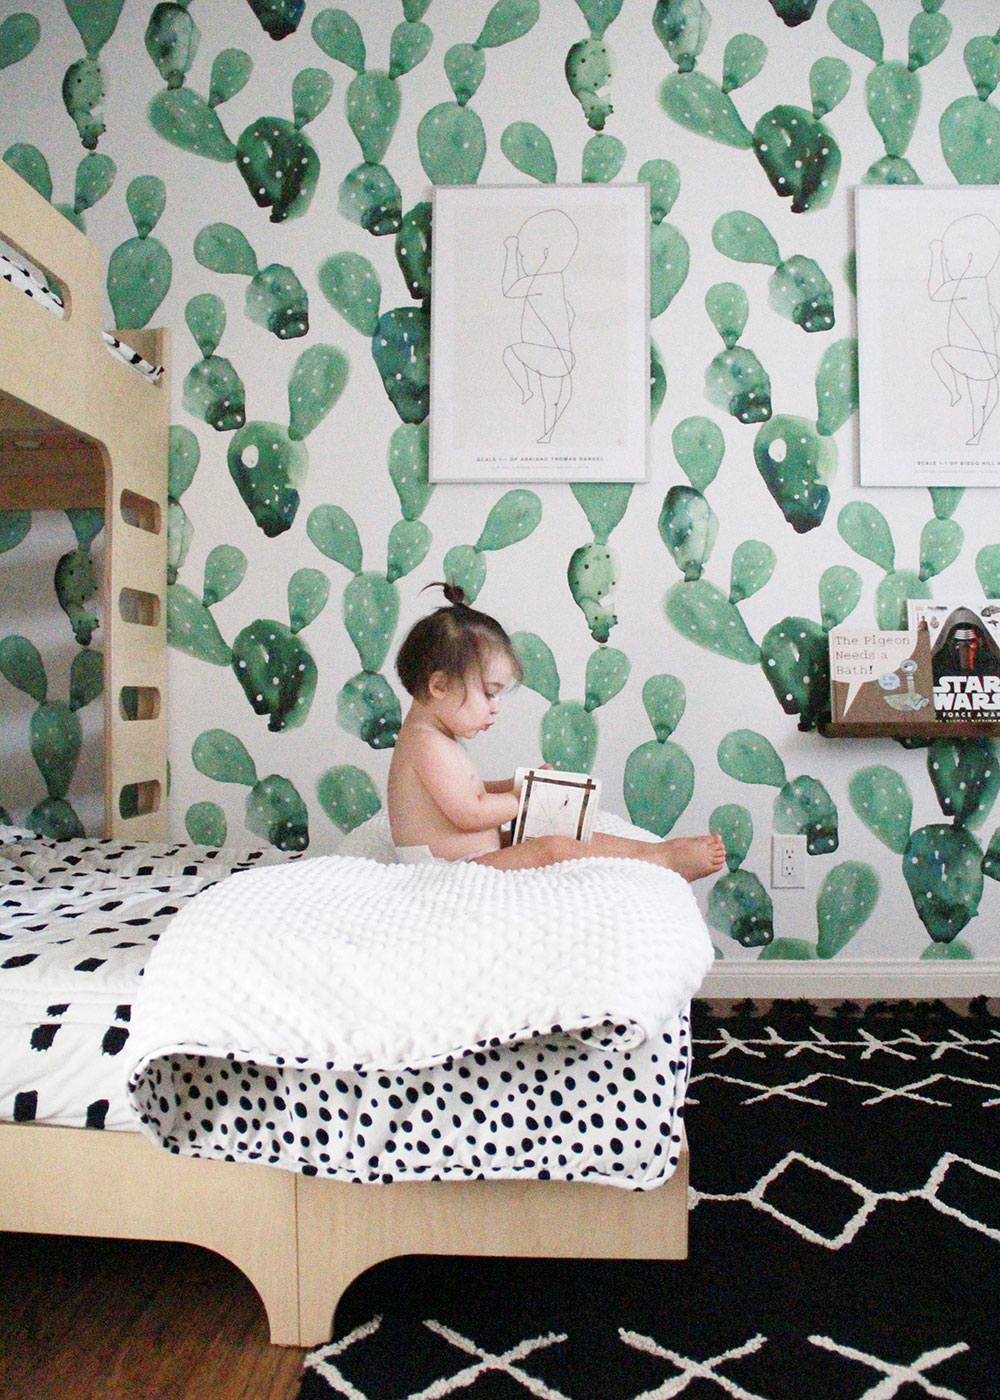 starting his love for reading young in this shared boys room | thelovedesignedlife.com